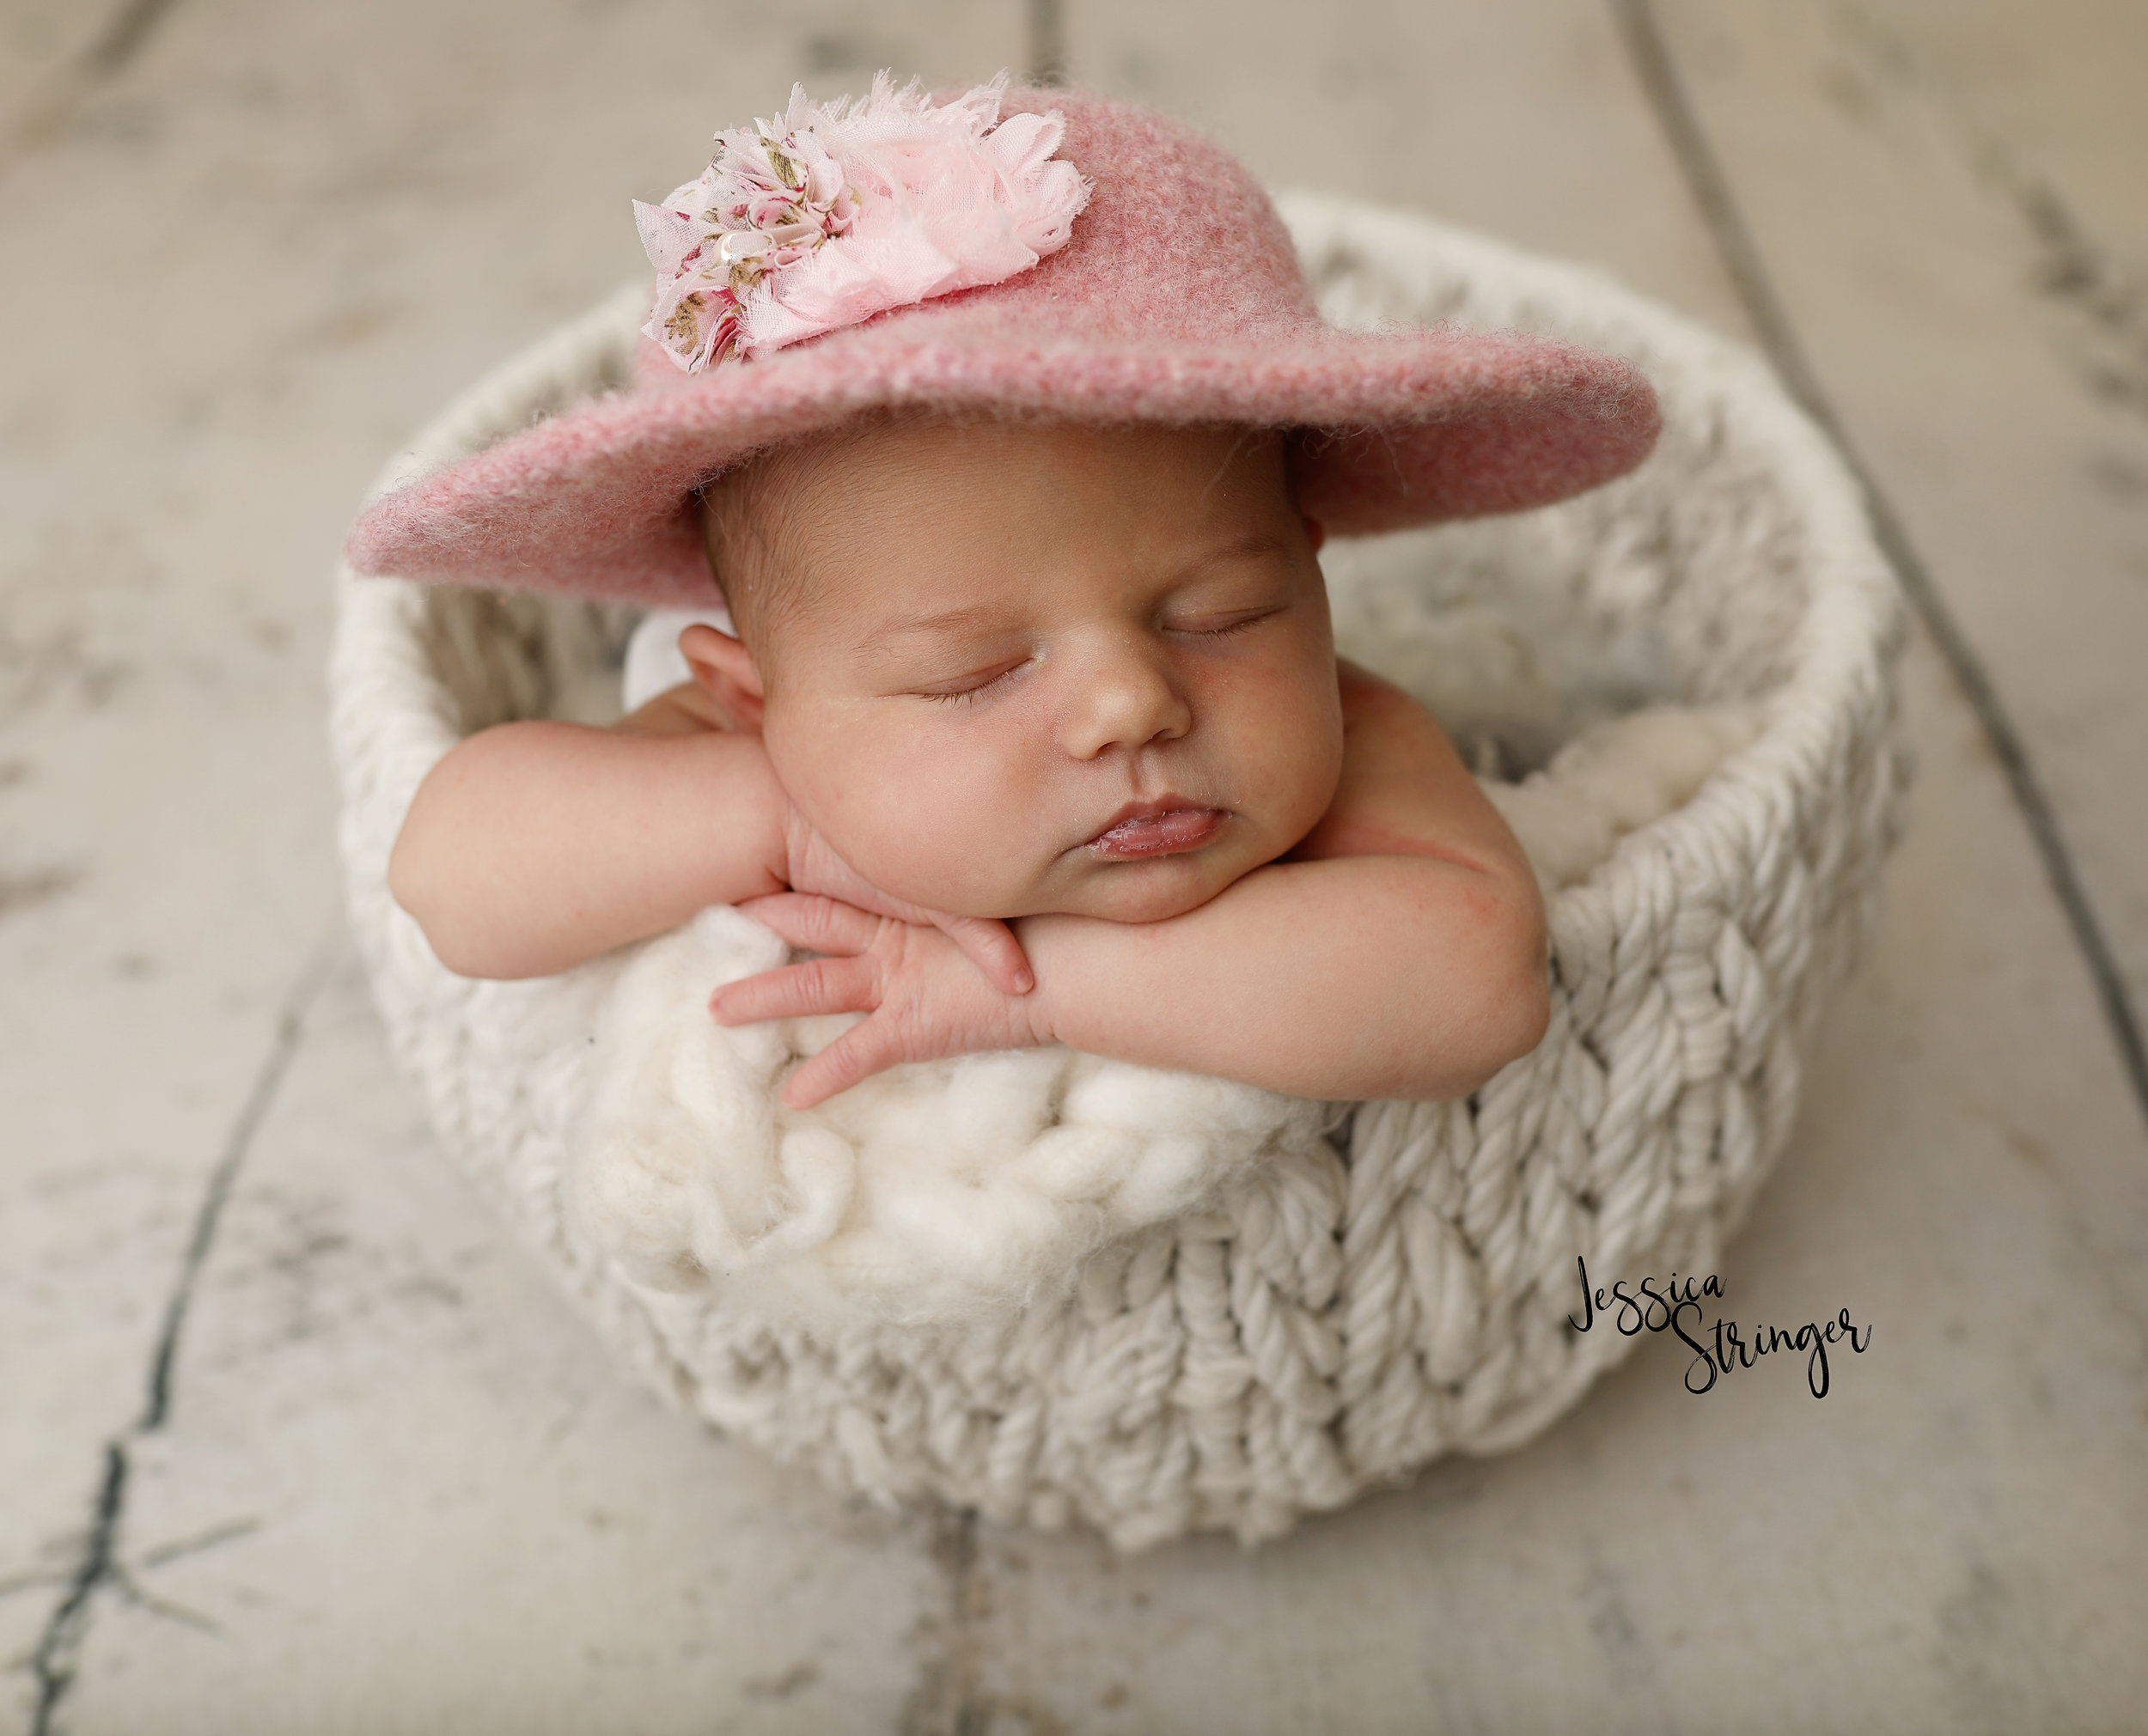 Rochester newborn photographers // photographers in rochester ny // infant baby first birthday photographers in rochester ny // baby photo ideas // newborn photo ideas /